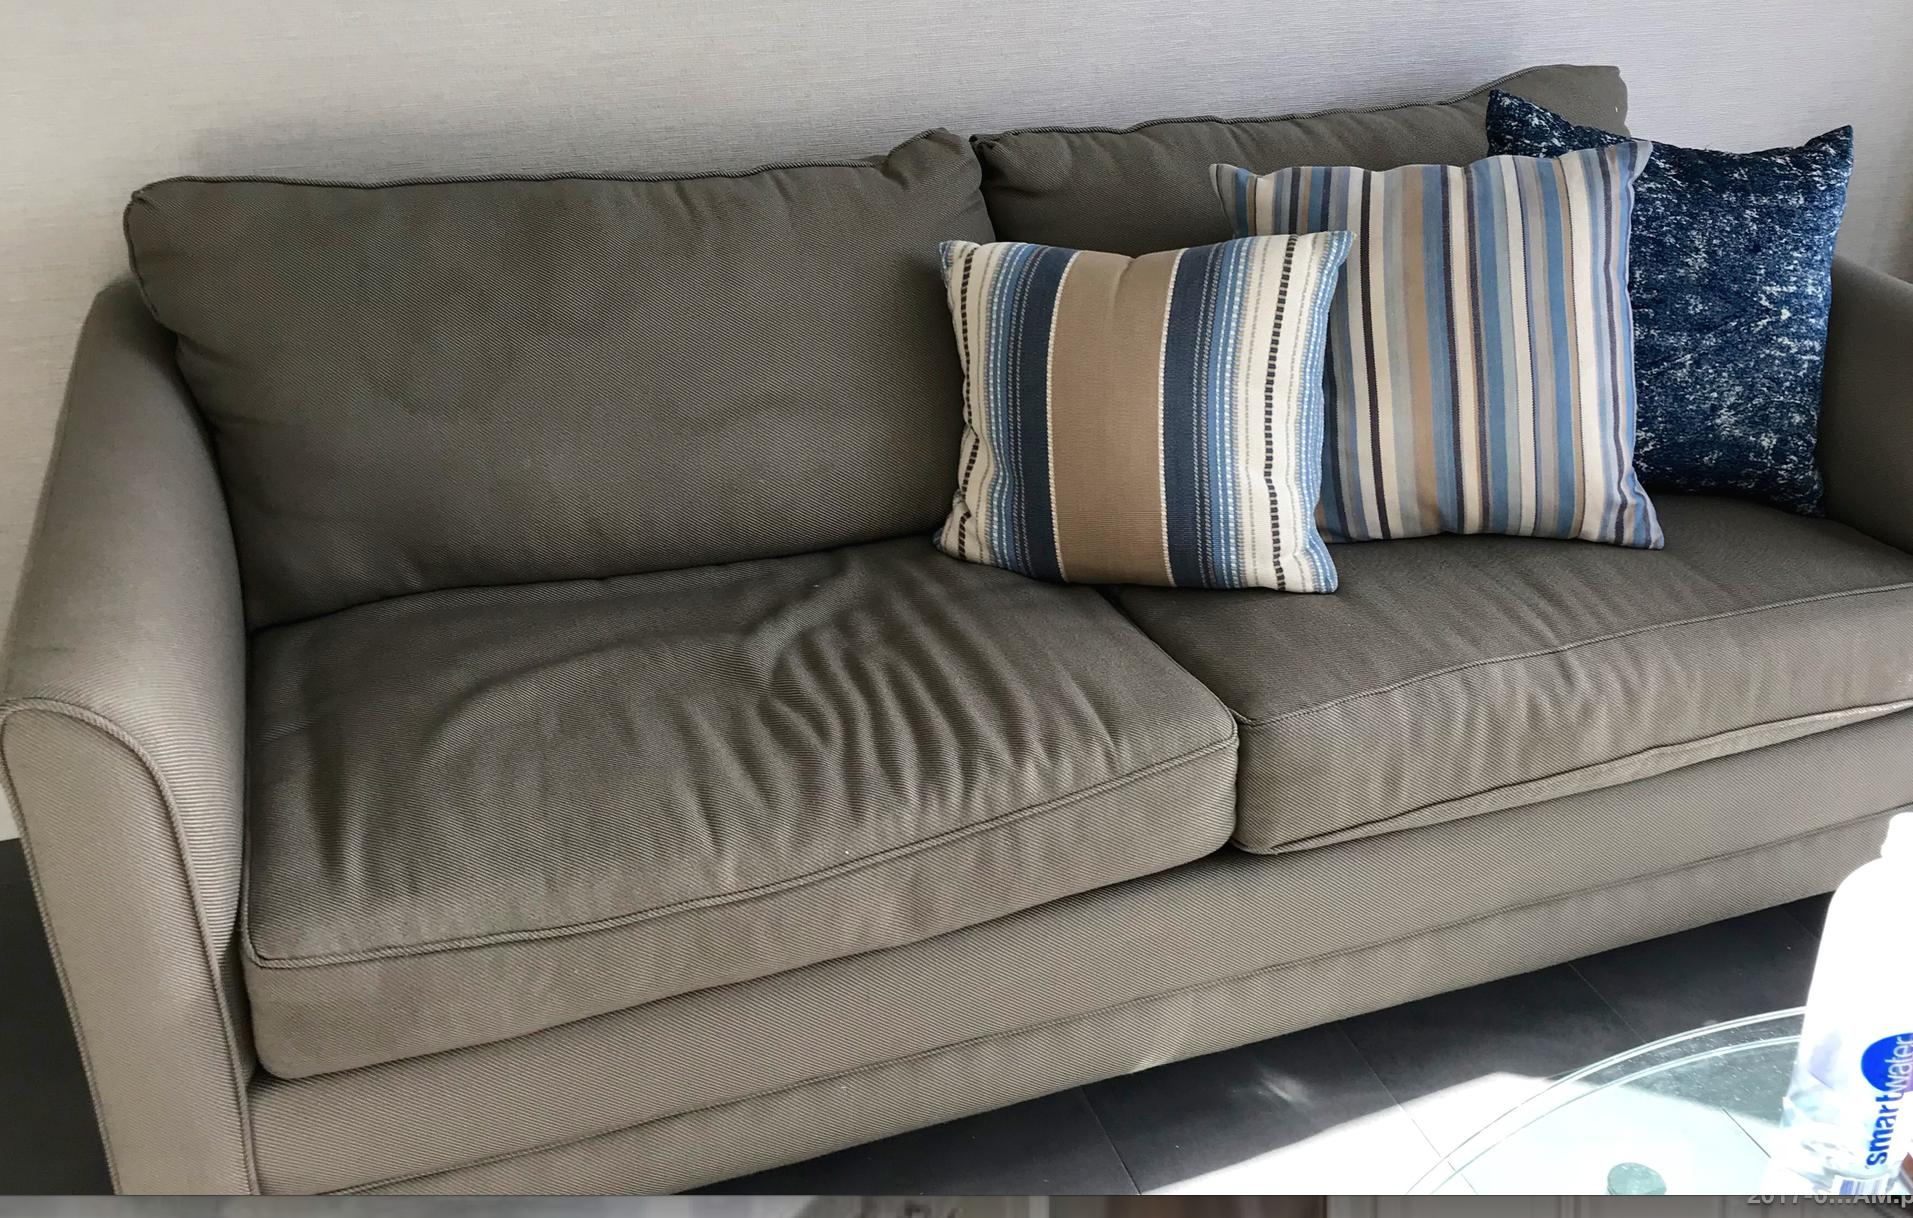 Stained, worn sofa bed